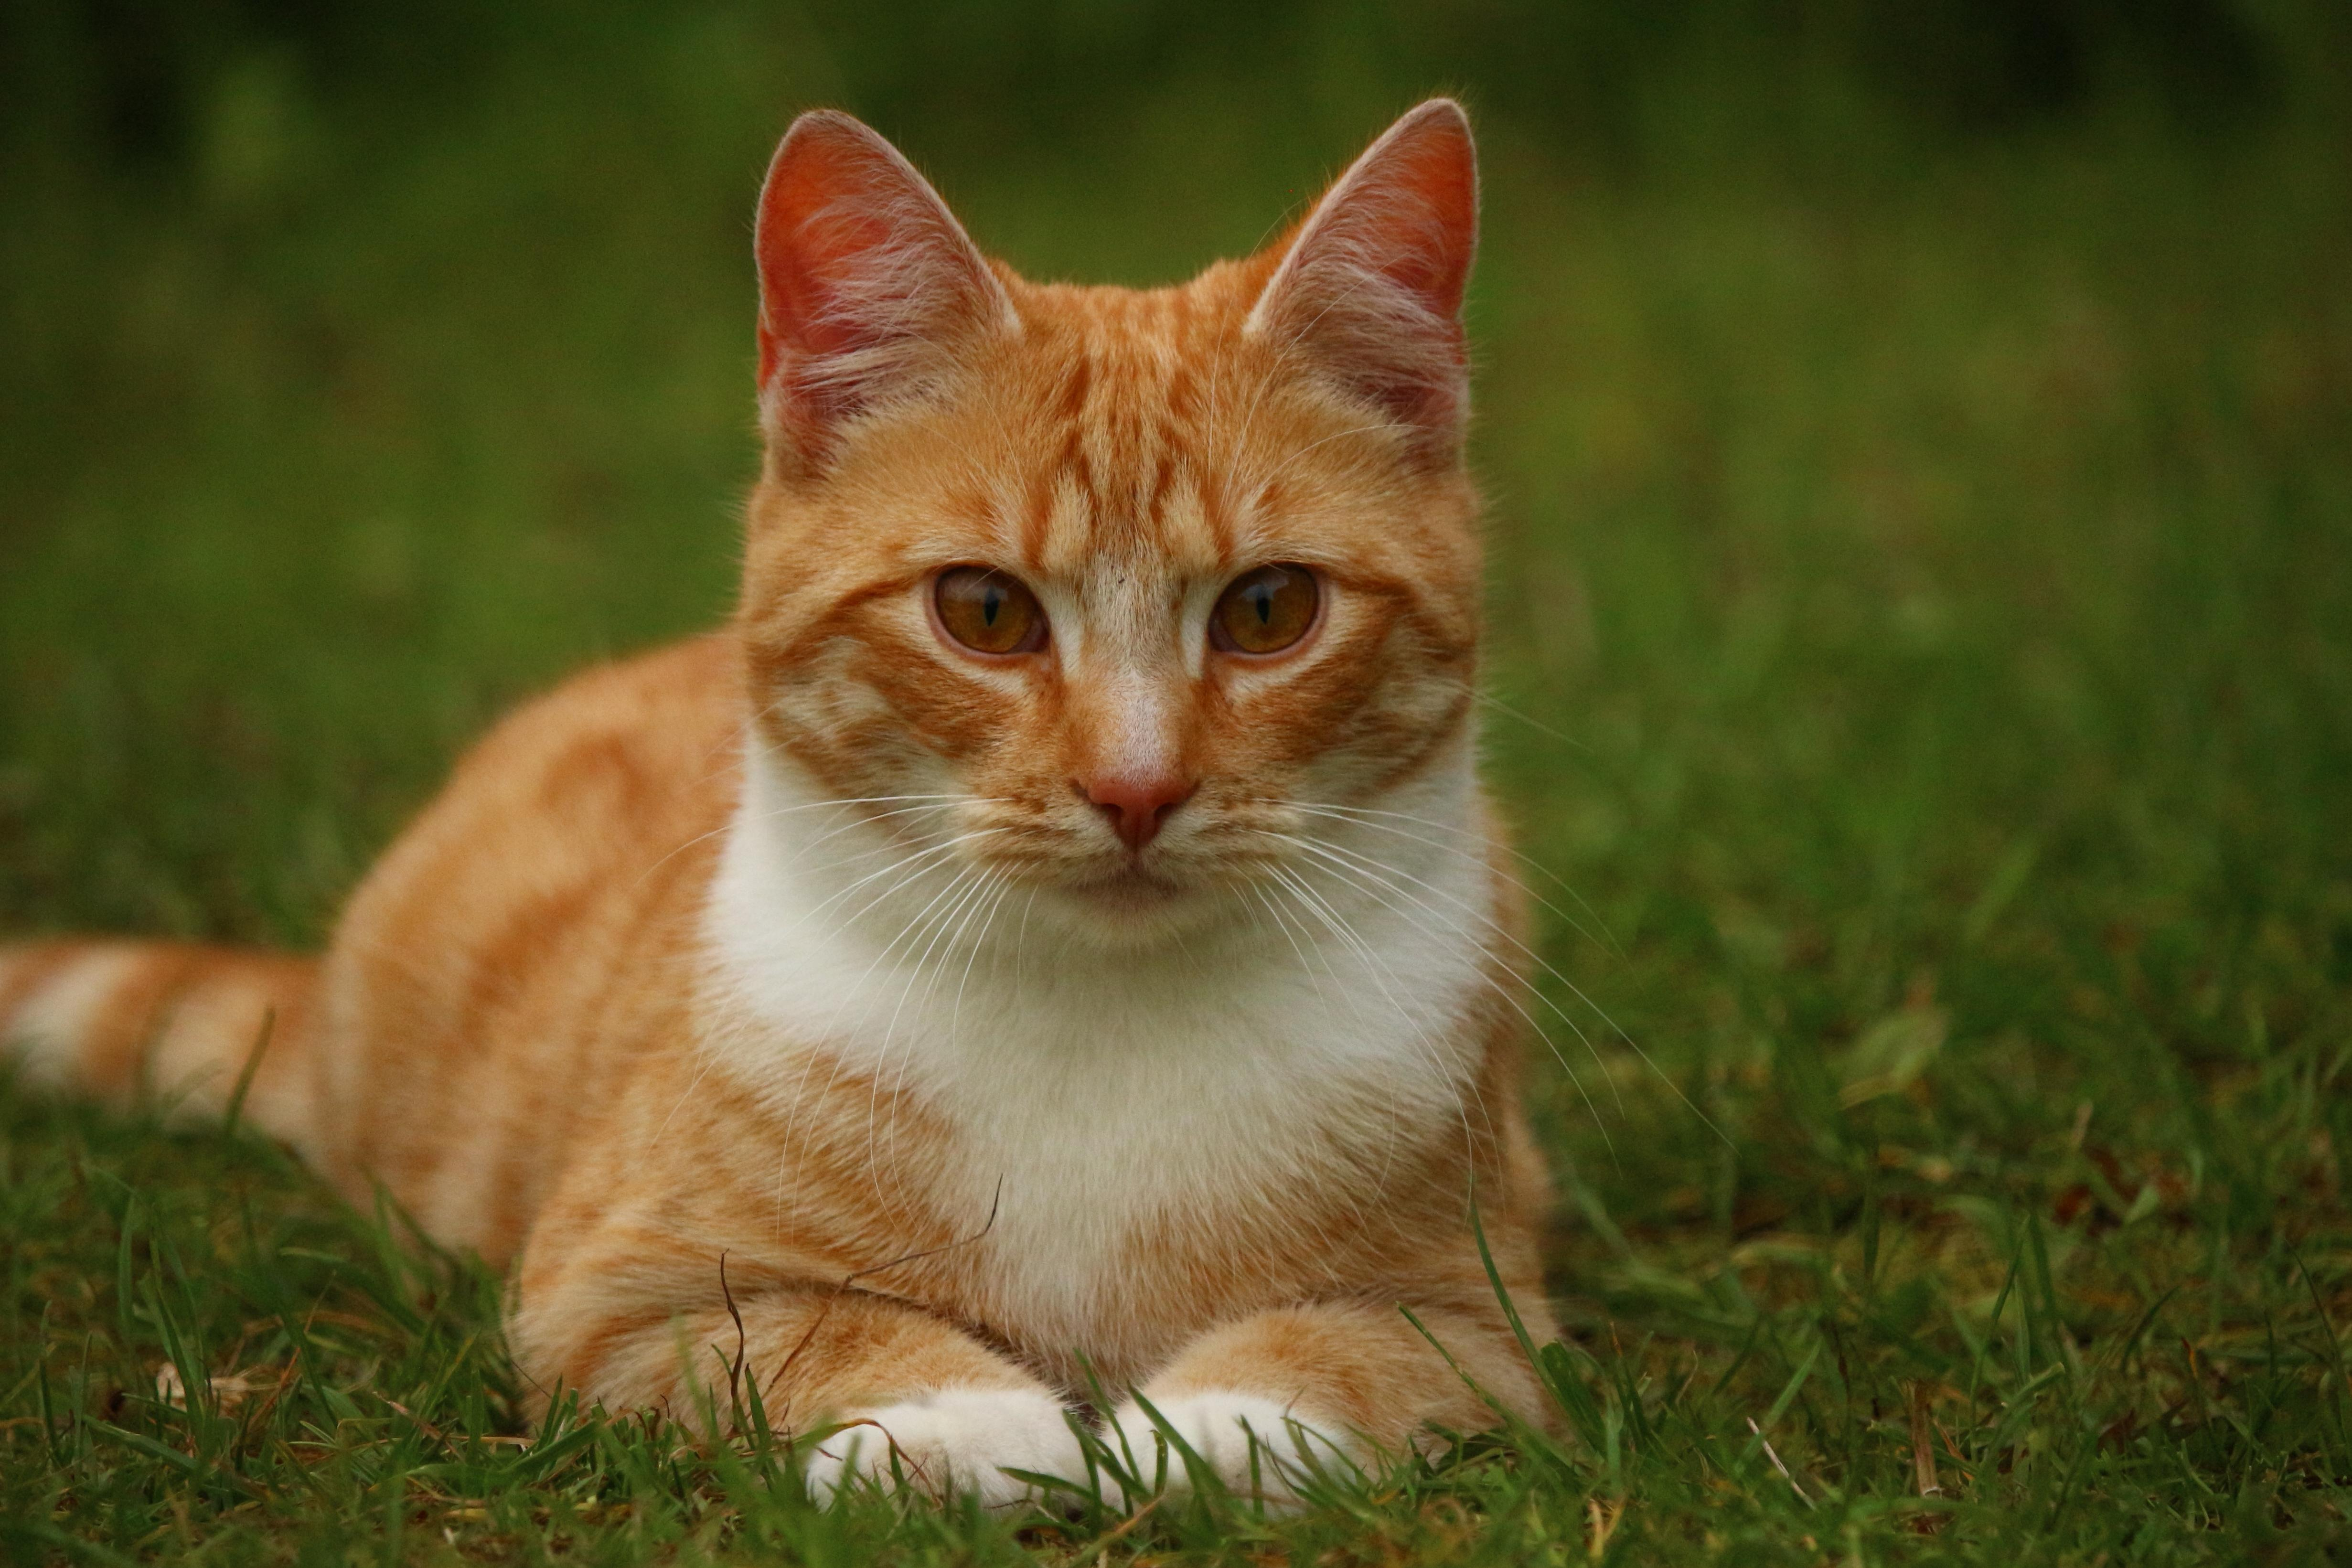 Free picture cute animal cat nature pet young